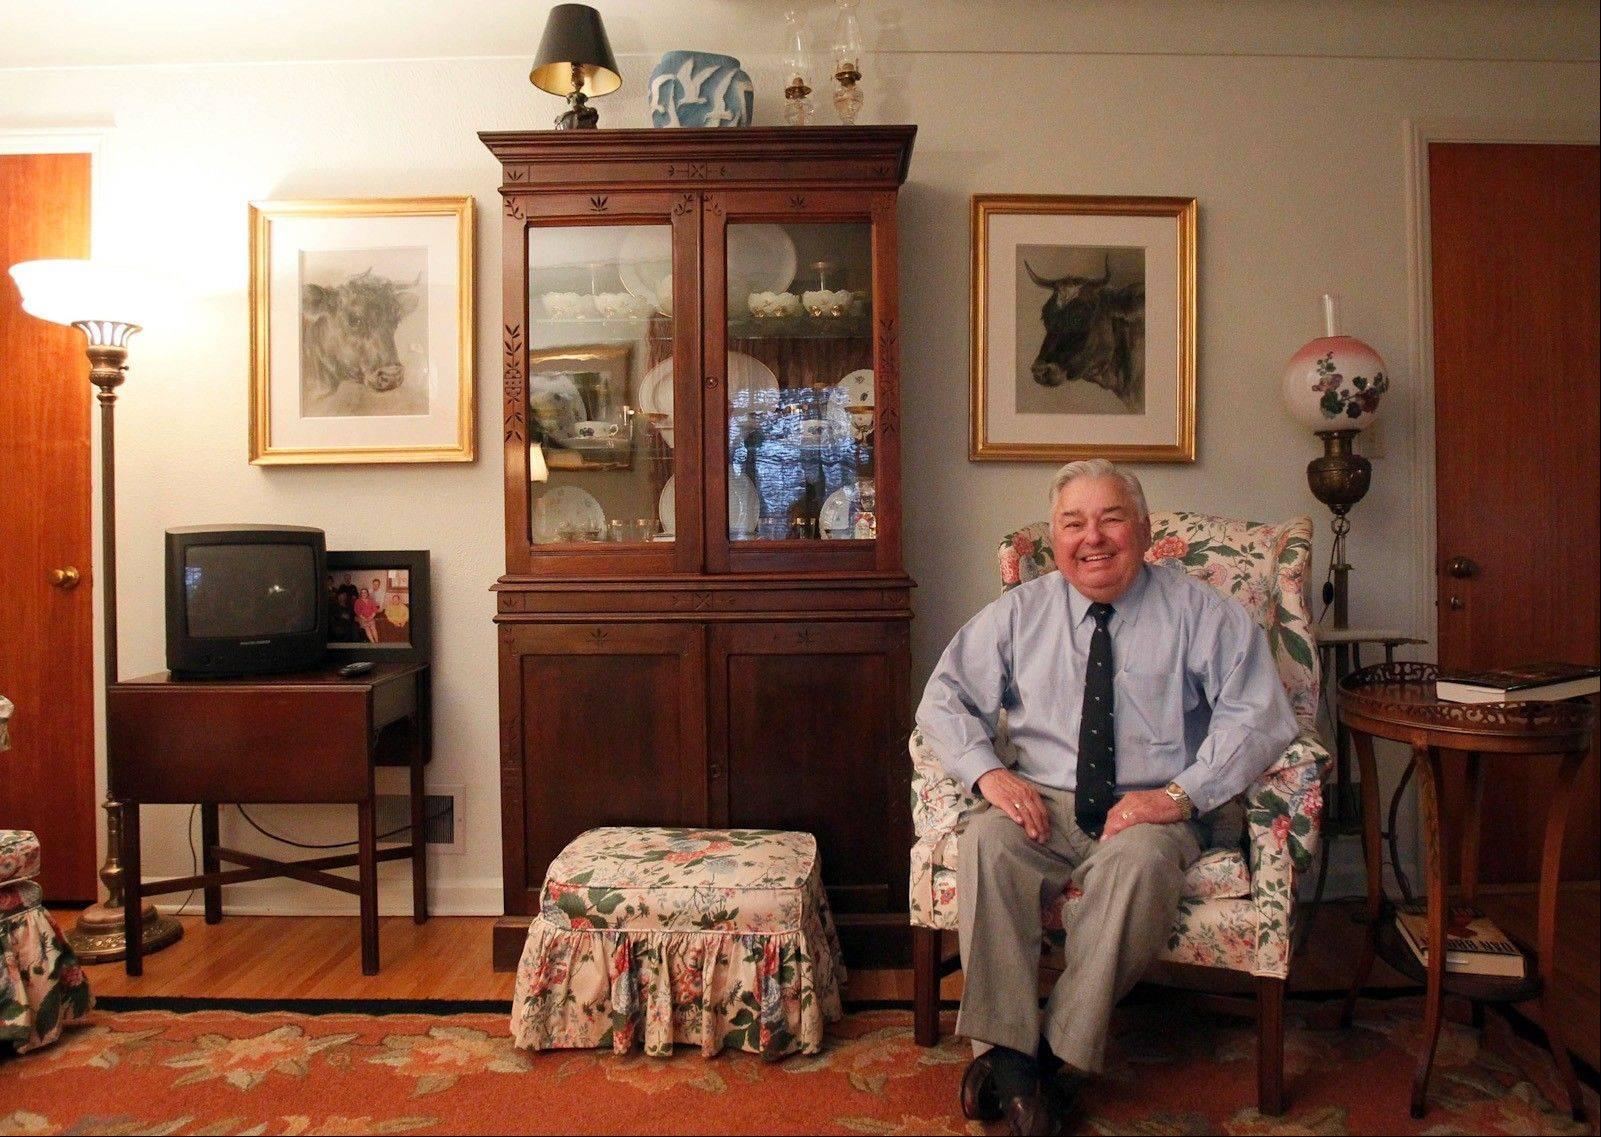 Antiques appraiser Barney Stickles appreciates the 1890 cabinet he displays in his home.